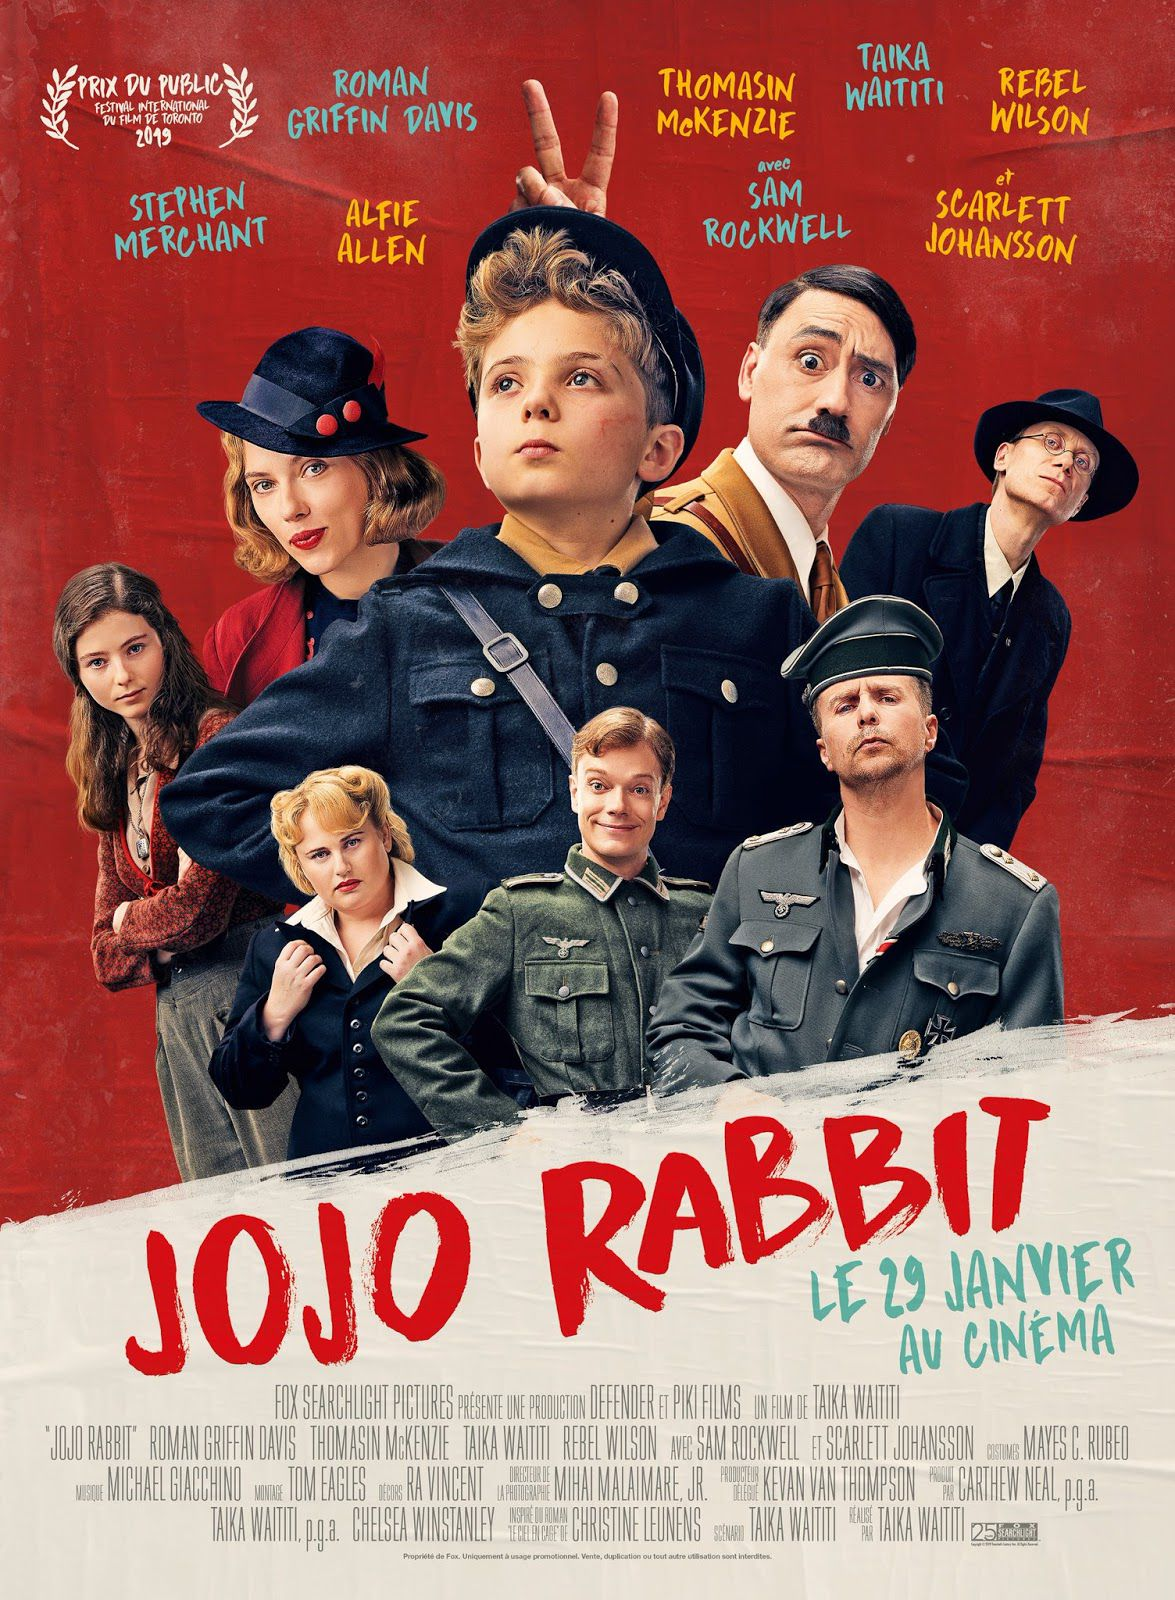 Jojo Rabbit - Film (2020) streaming VF gratuit complet